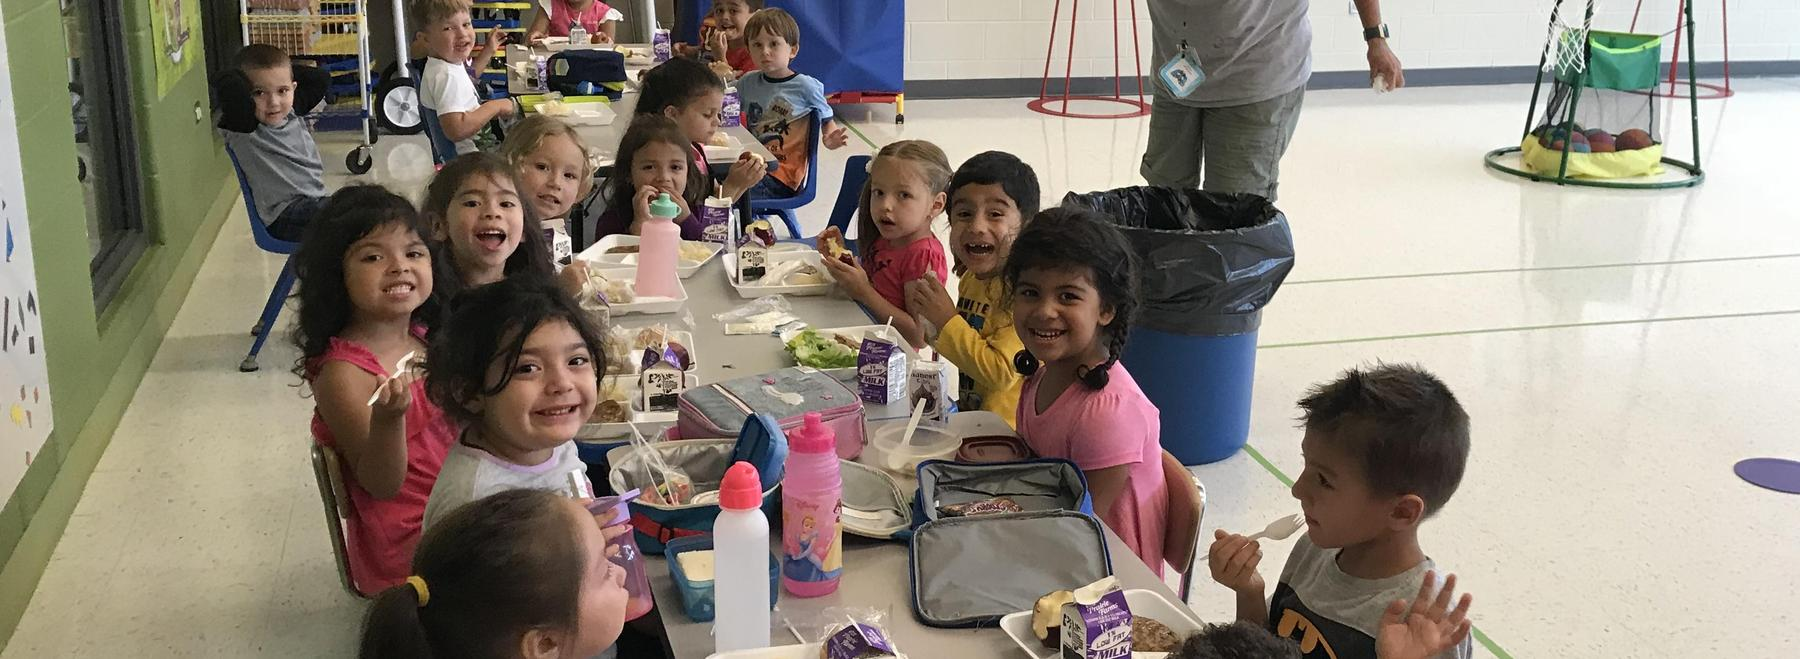 AELC lunch